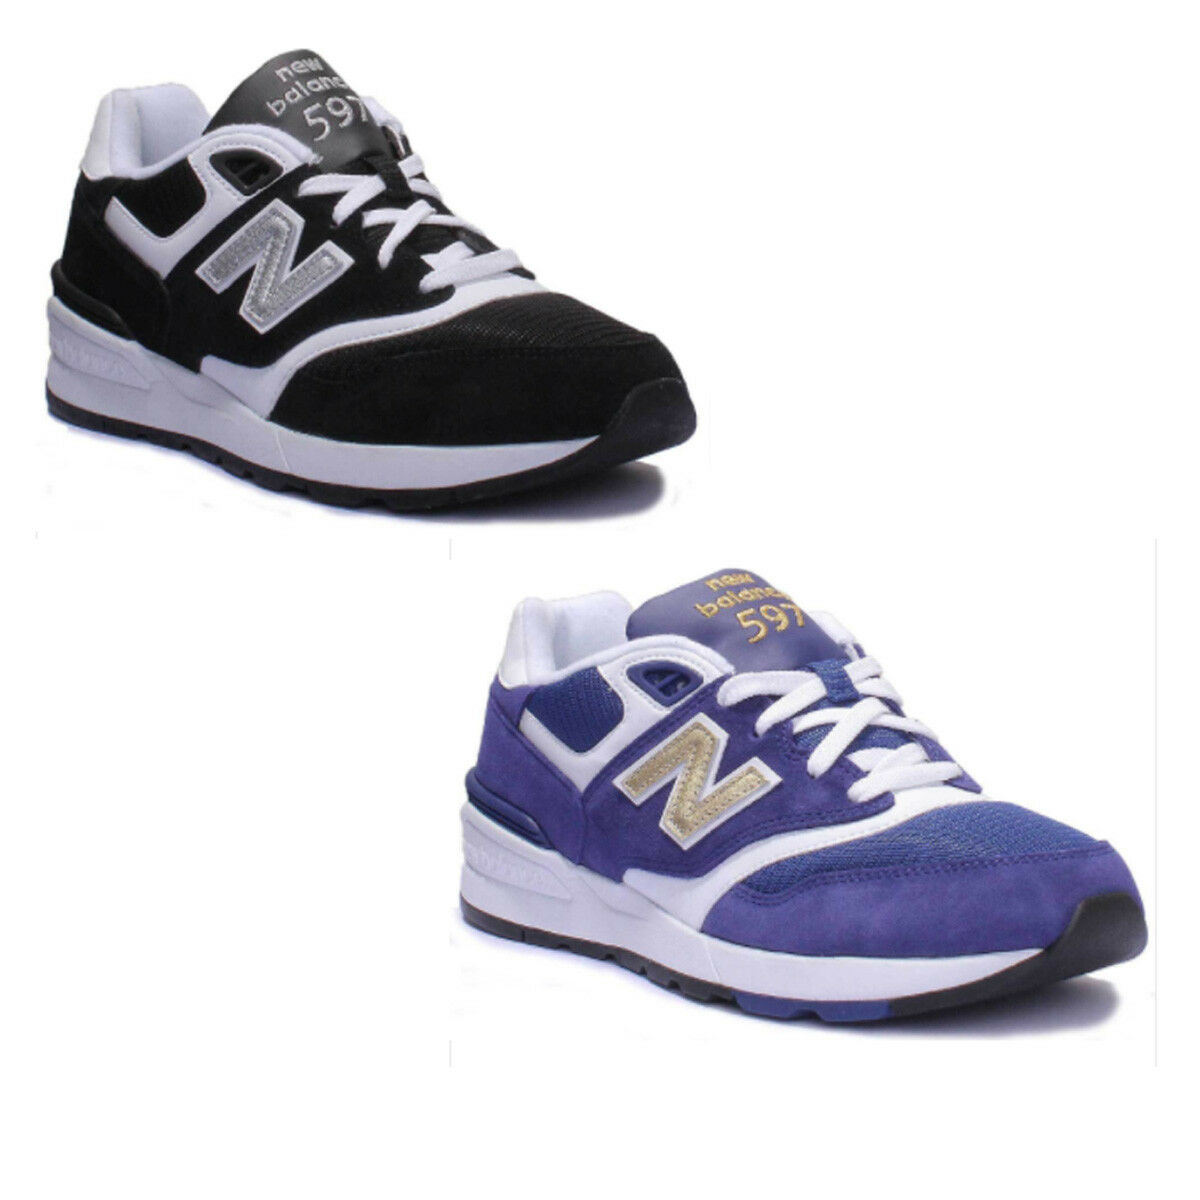 New Balance ML597 Hommes Noir Blanc Divers Baskets 7 - 12